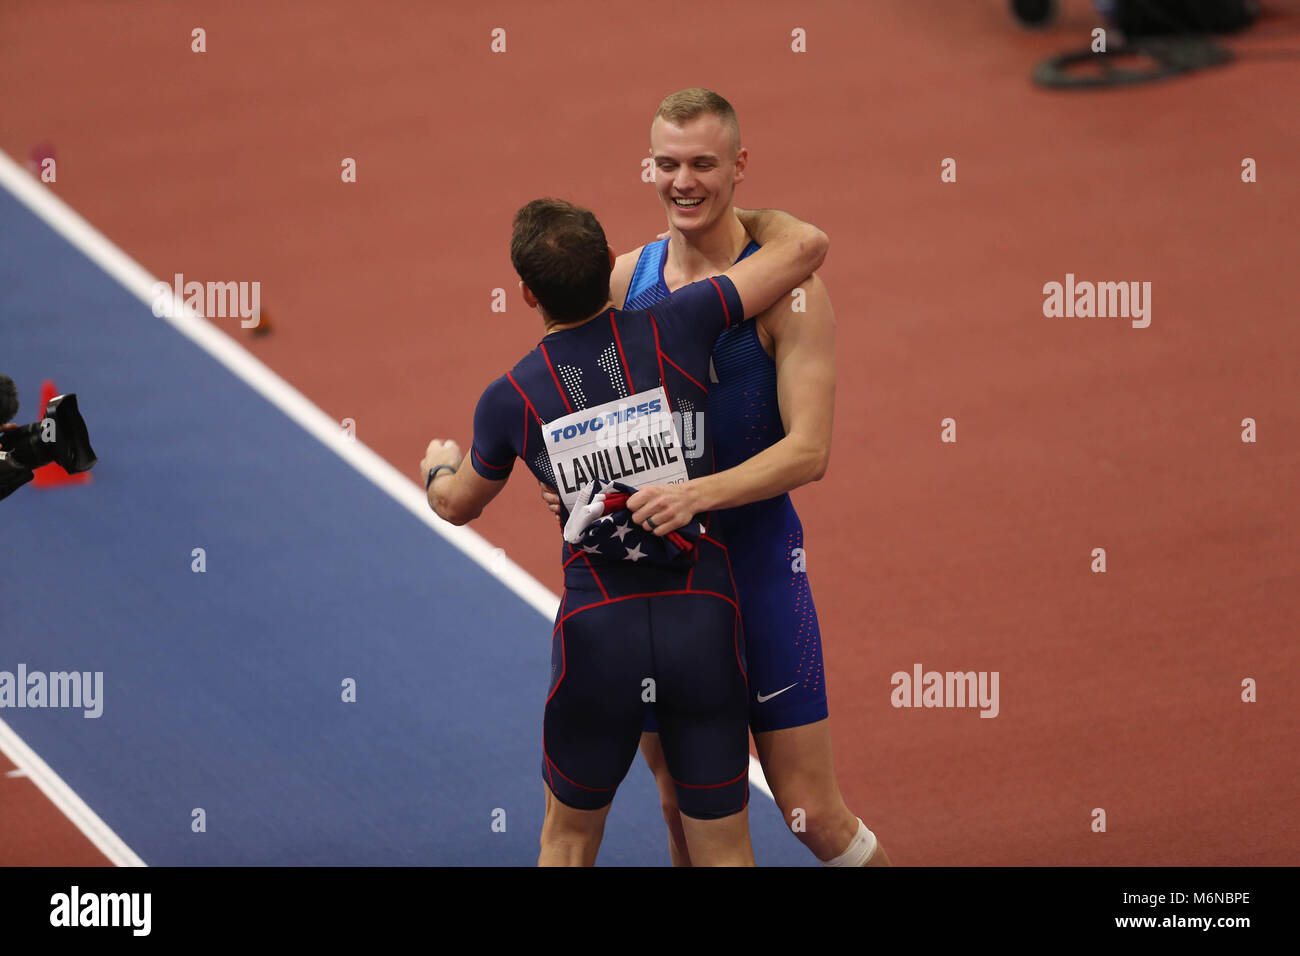 Birmingham, UK. 4th March, 2018. Renaud LAVILLENIE (Gold Medal) (FRANCE) and Sam KENDRICKS (Silver Medal) (USA) - Stock Image